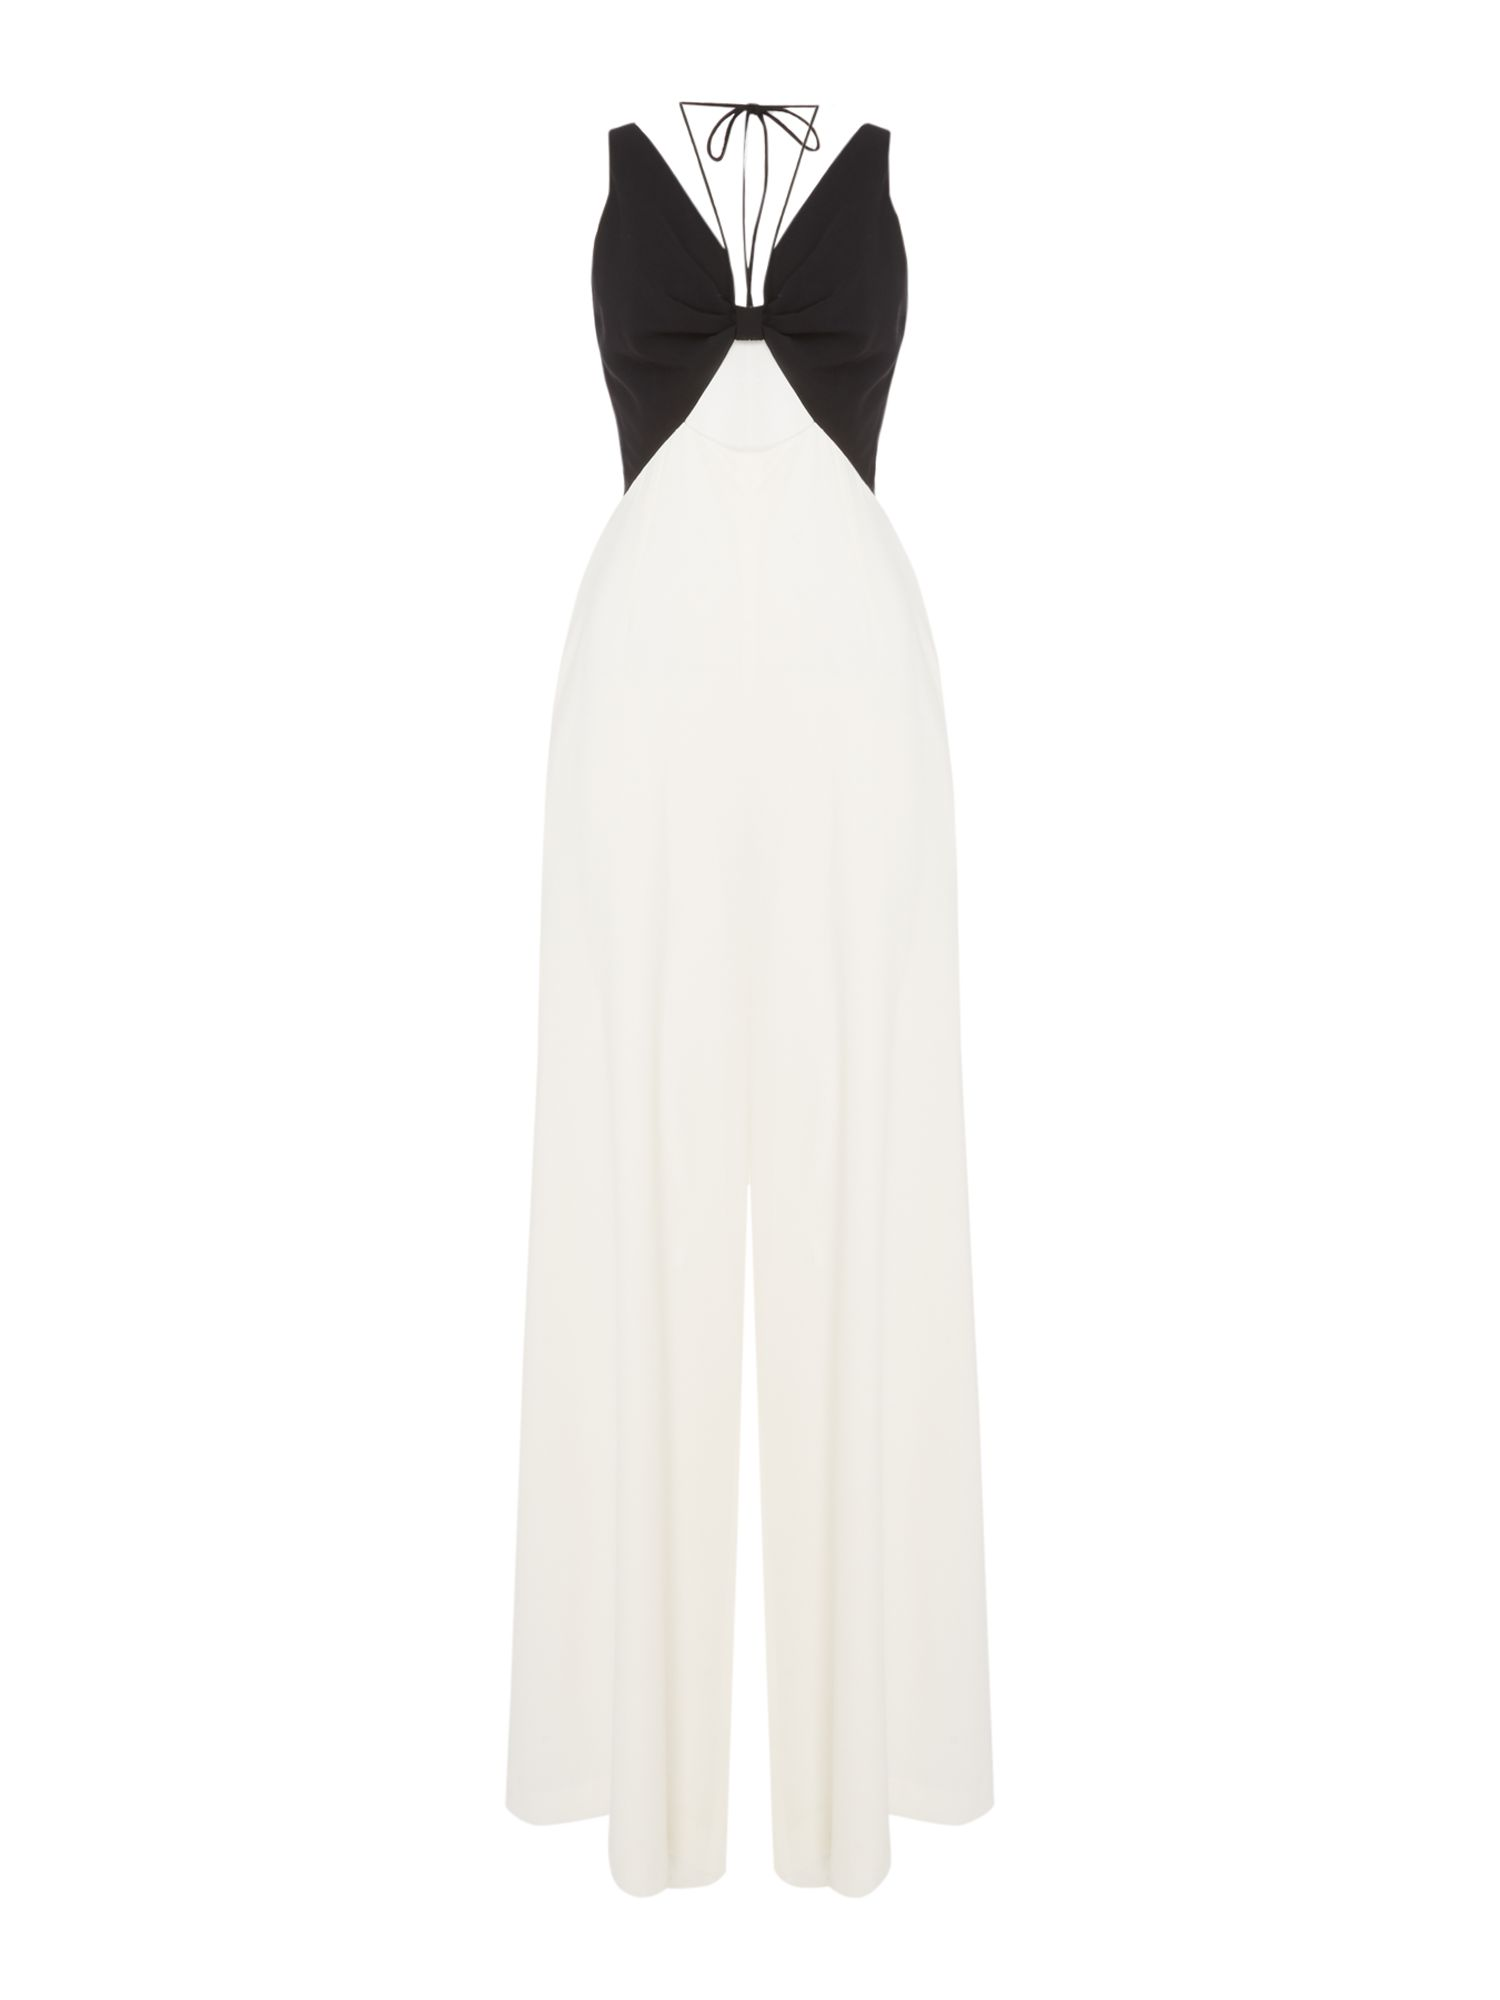 Jill Jill Stuart V neck jumpsuit with cut out detail, Black & White